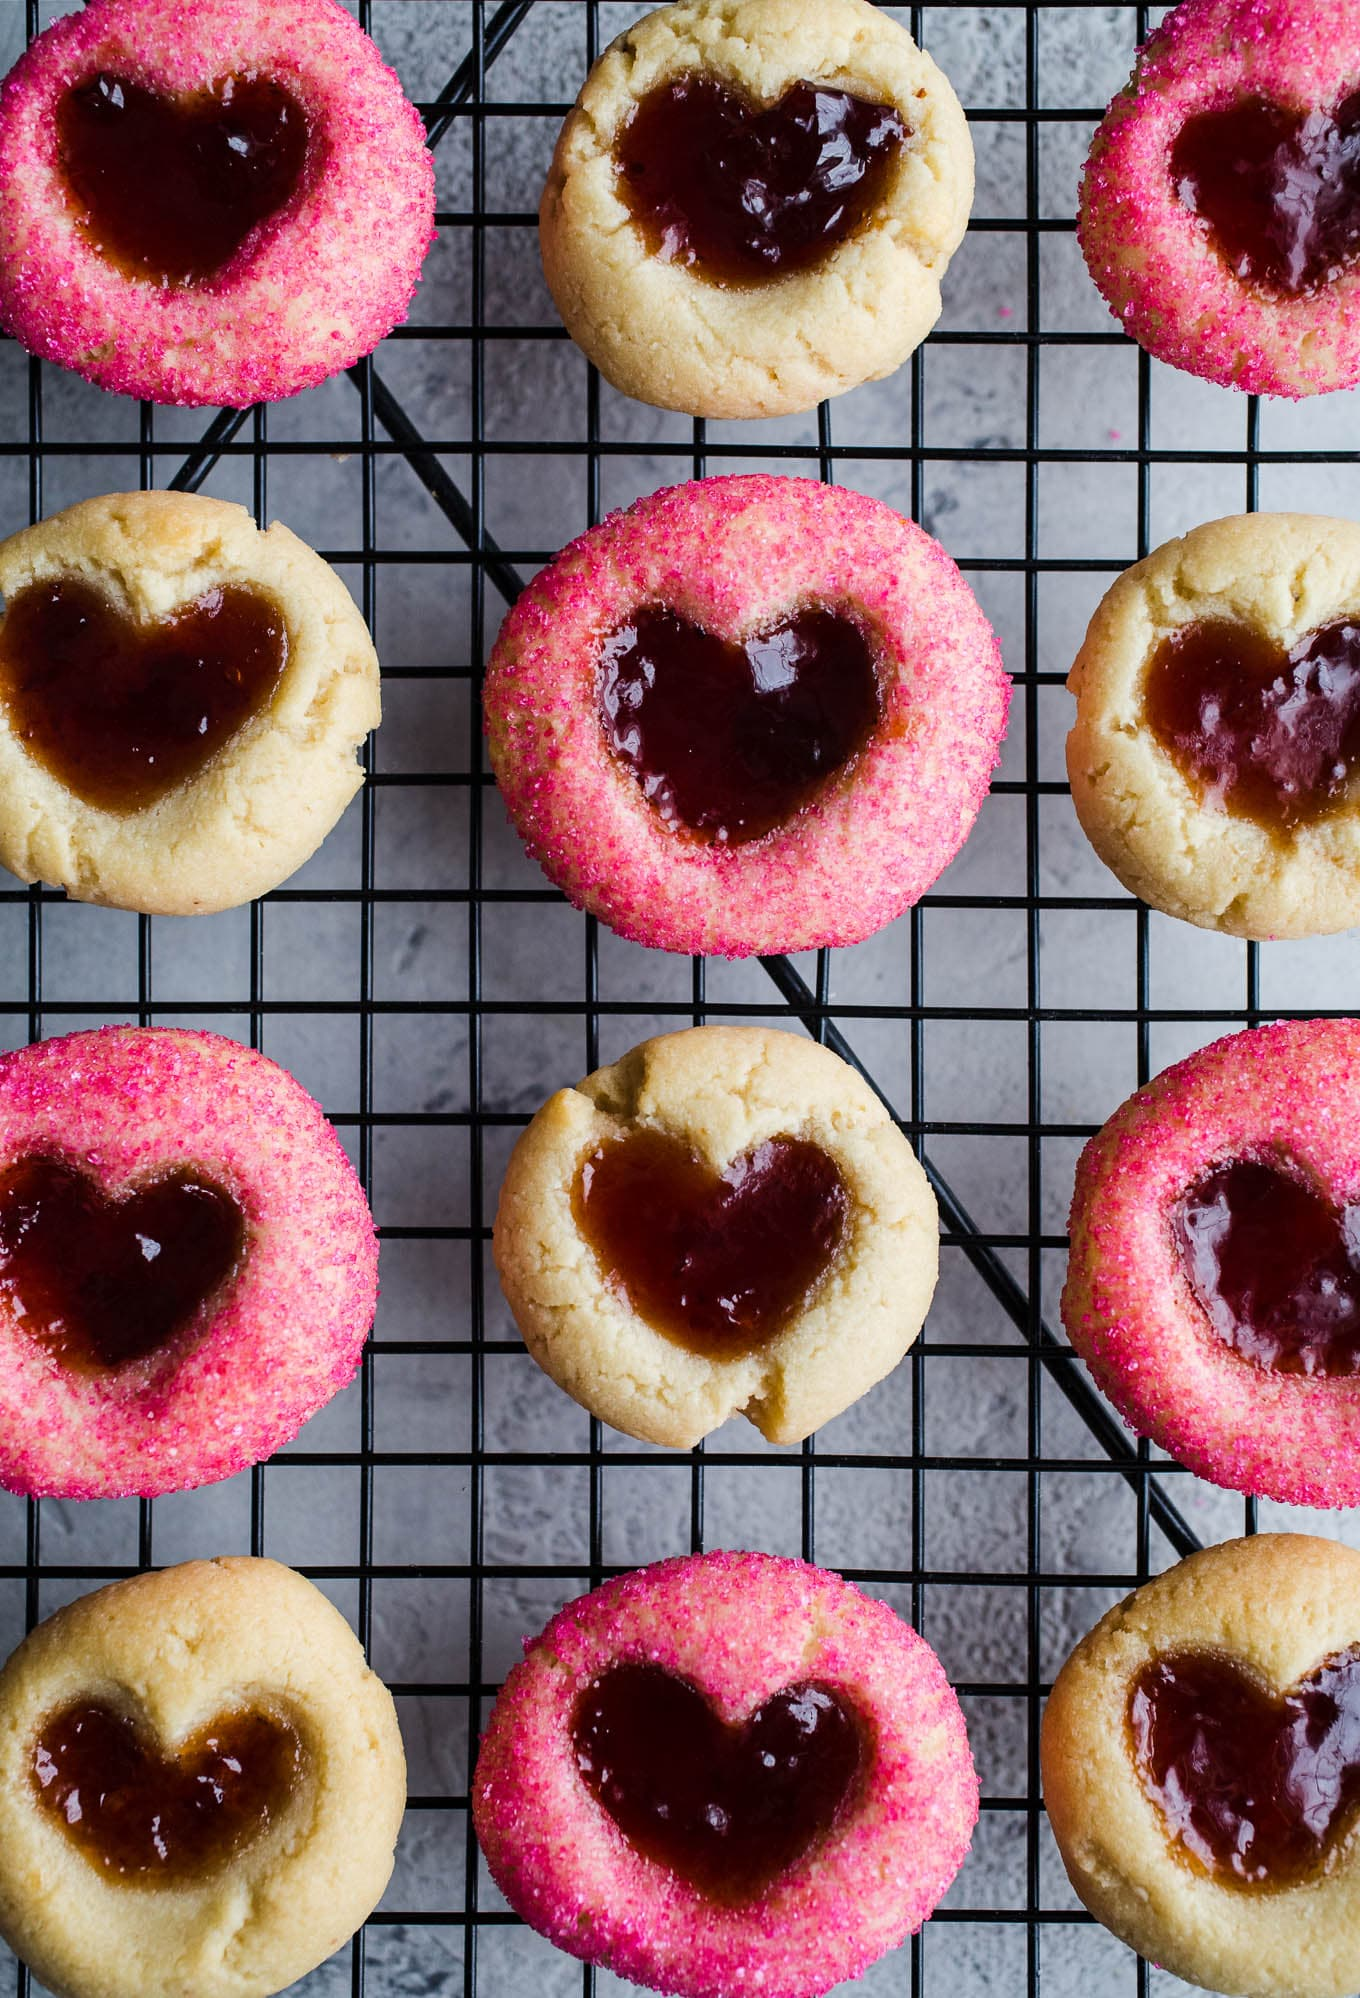 Easy 5-ingredient thumbprint cookies made with almond flour and sweetened with maple syrup, filled with your favorite jam. A gluten-free, vegan thumbprint cookie recipe!